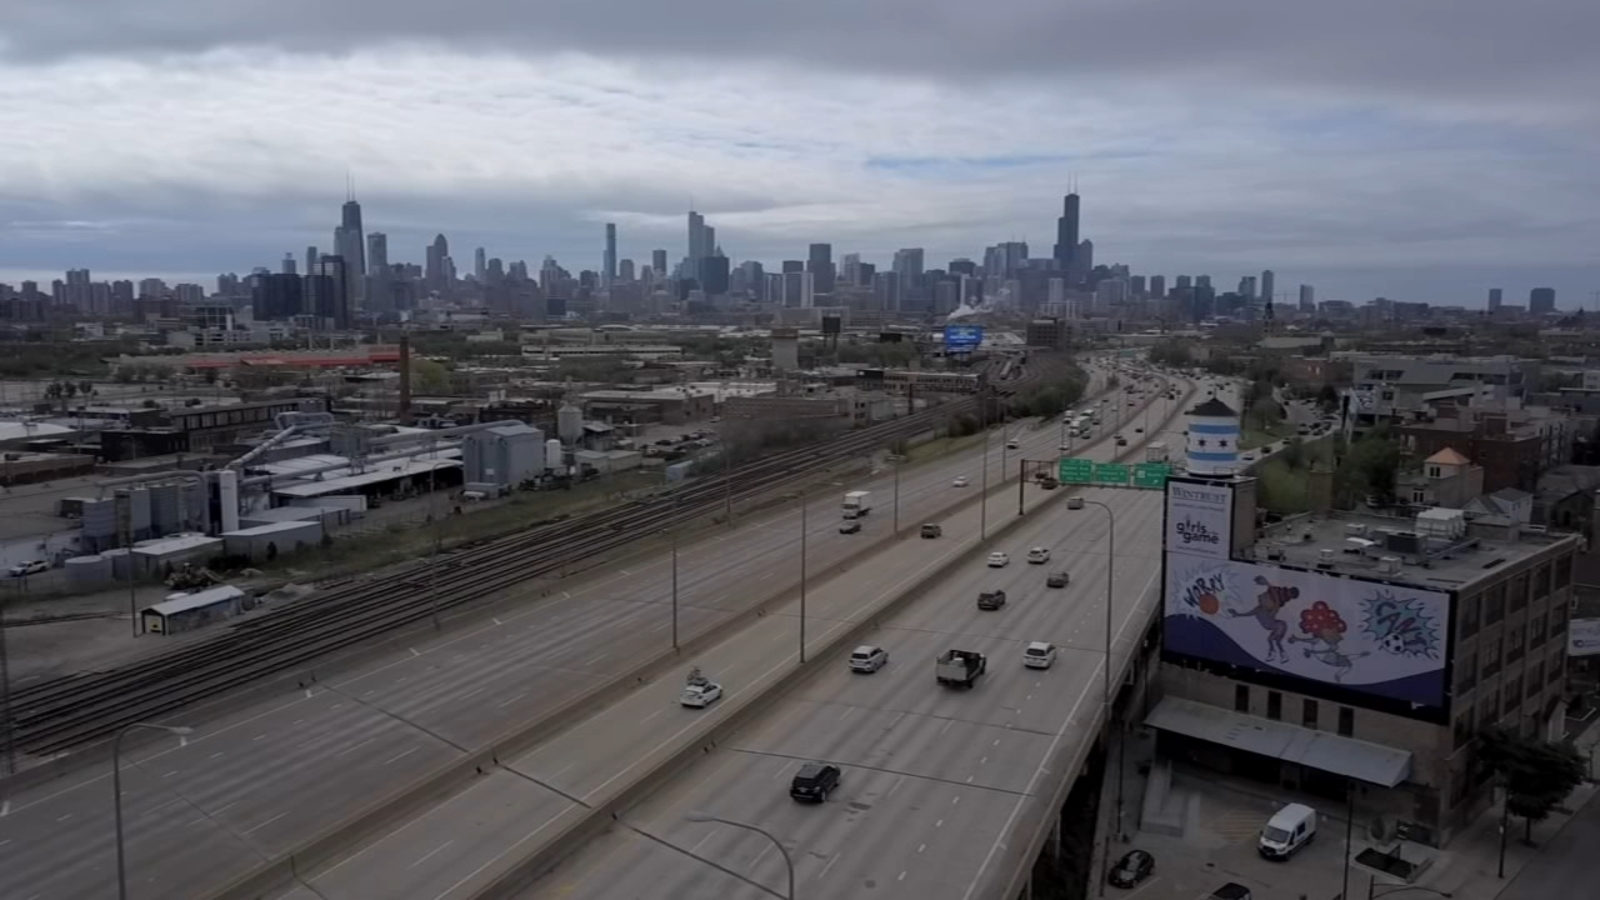 The Chicago Index: 73% of those surveyed think Chicago is on the wrong track